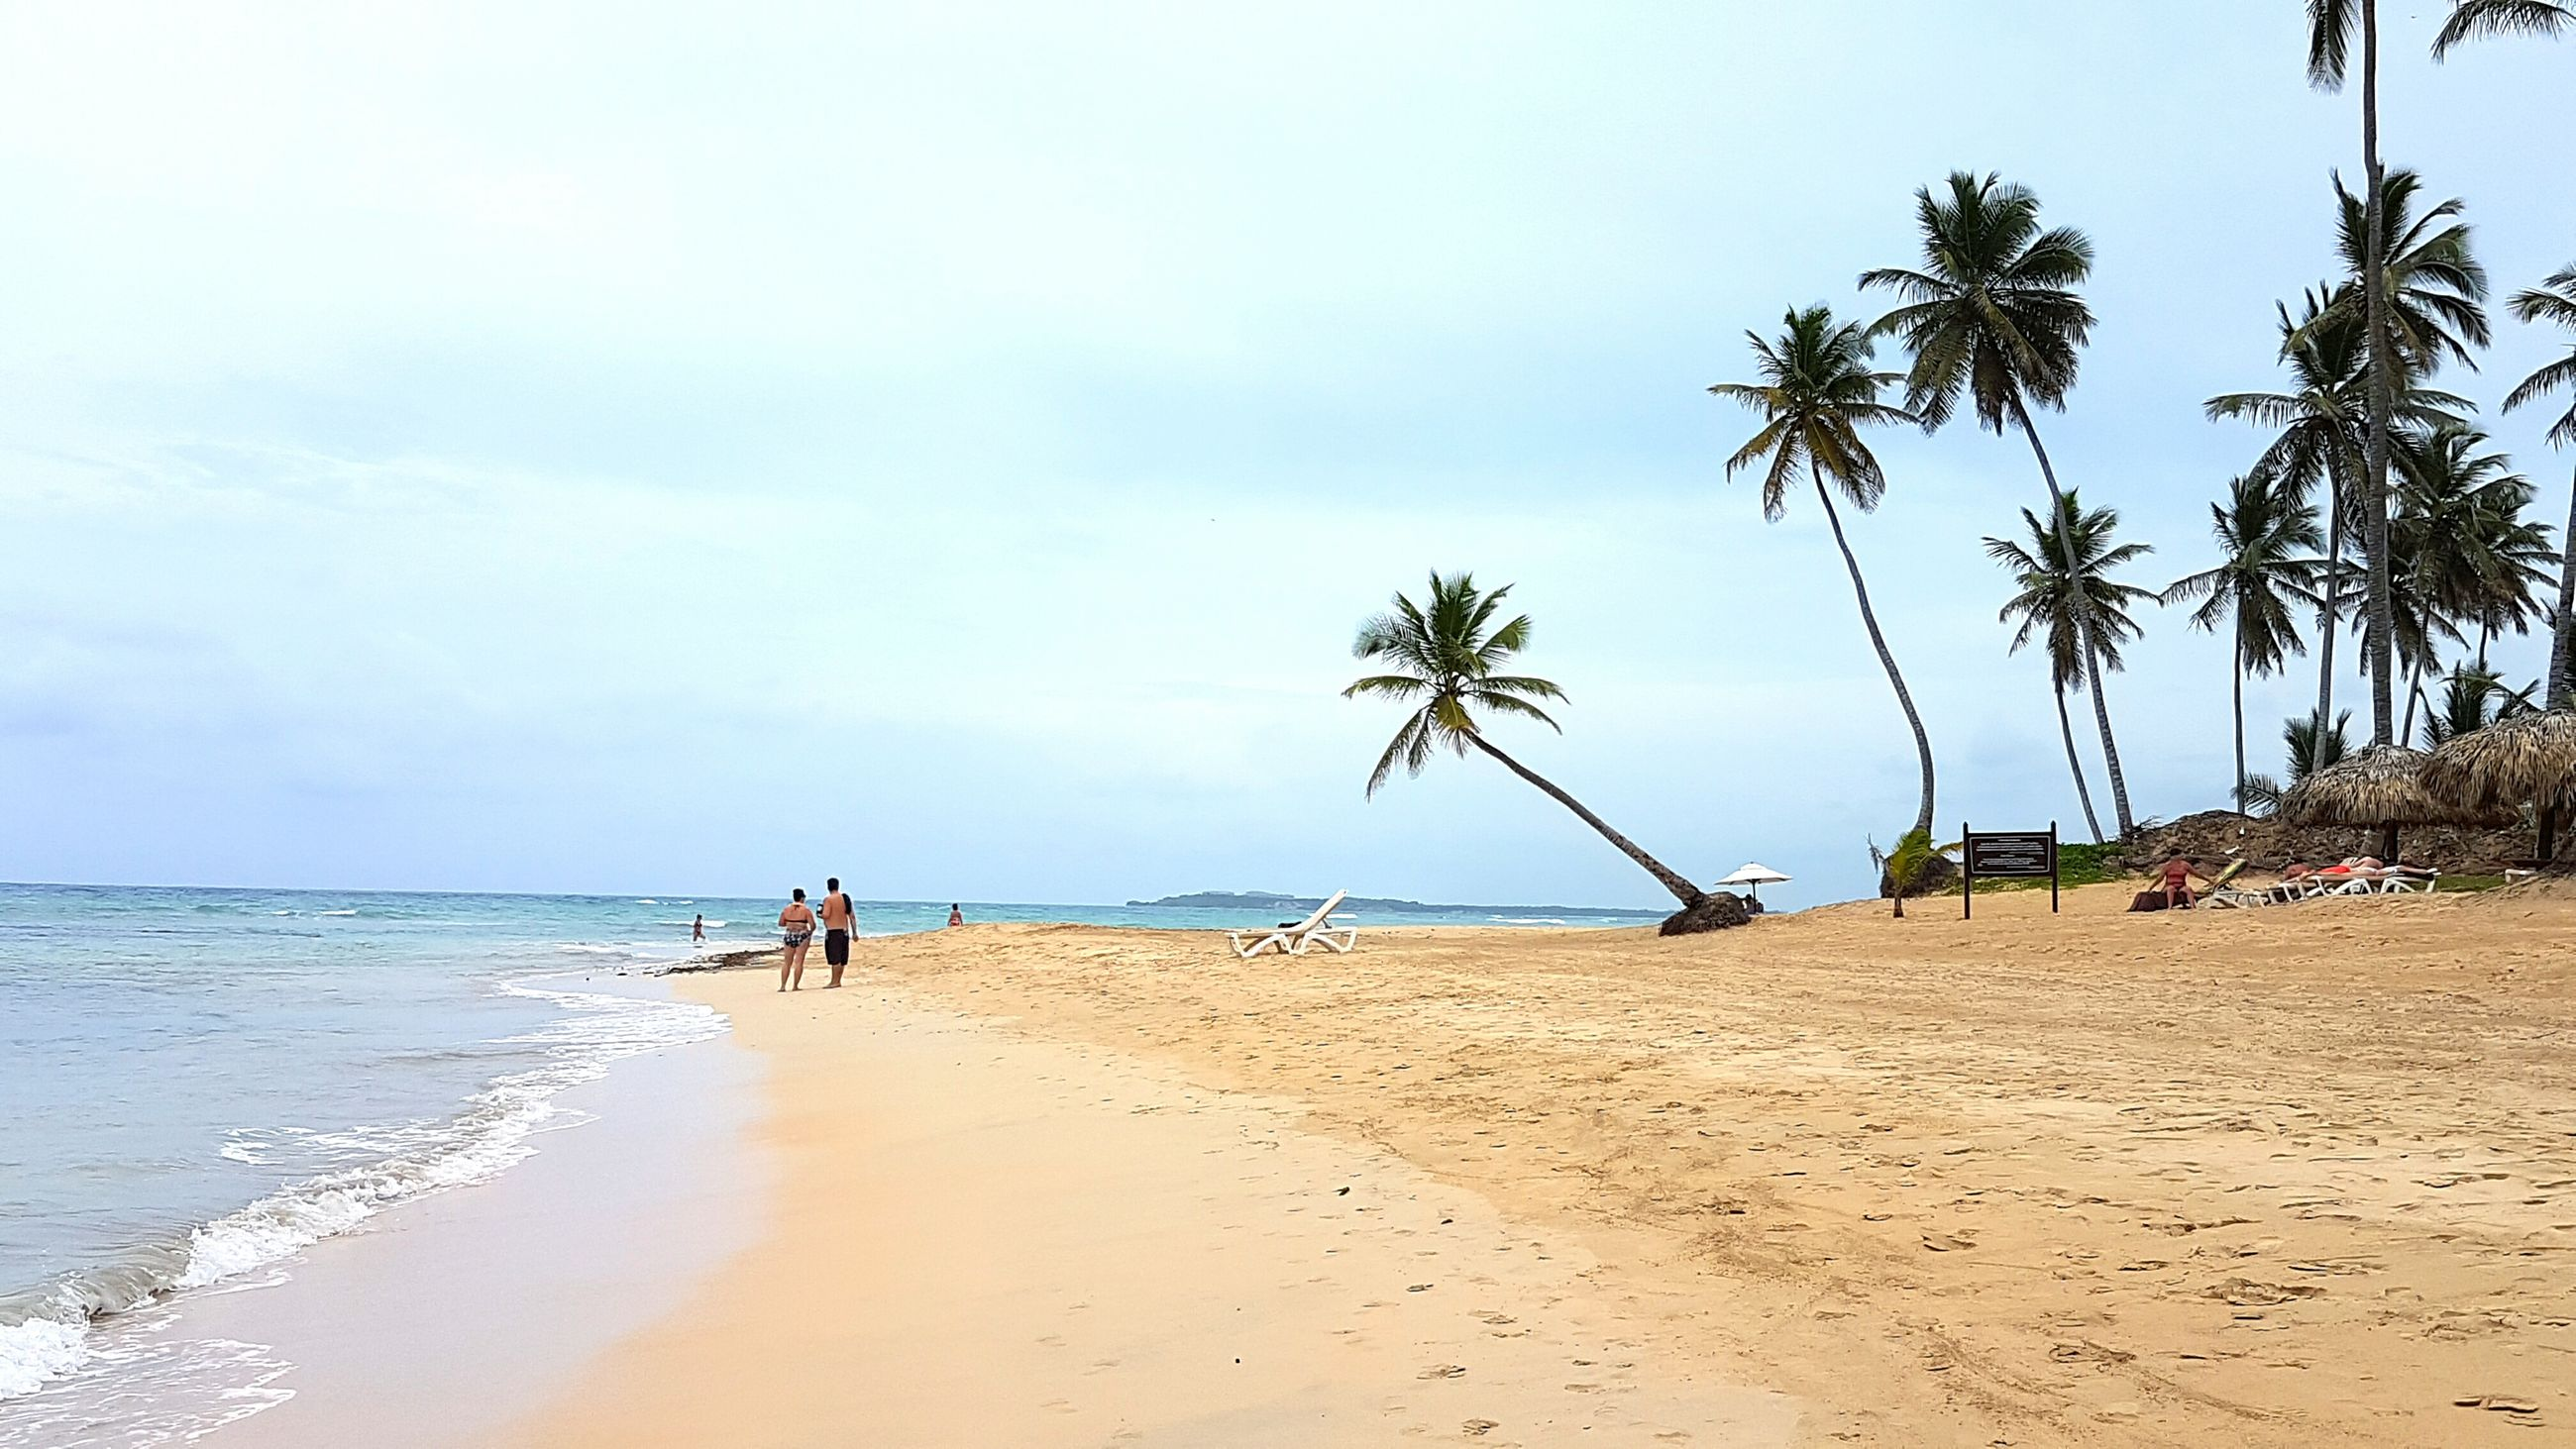 beach, sea, sand, shore, horizon over water, water, palm tree, sky, tree, tranquility, tranquil scene, vacations, scenics, beauty in nature, nature, tourist, leisure activity, incidental people, tourism